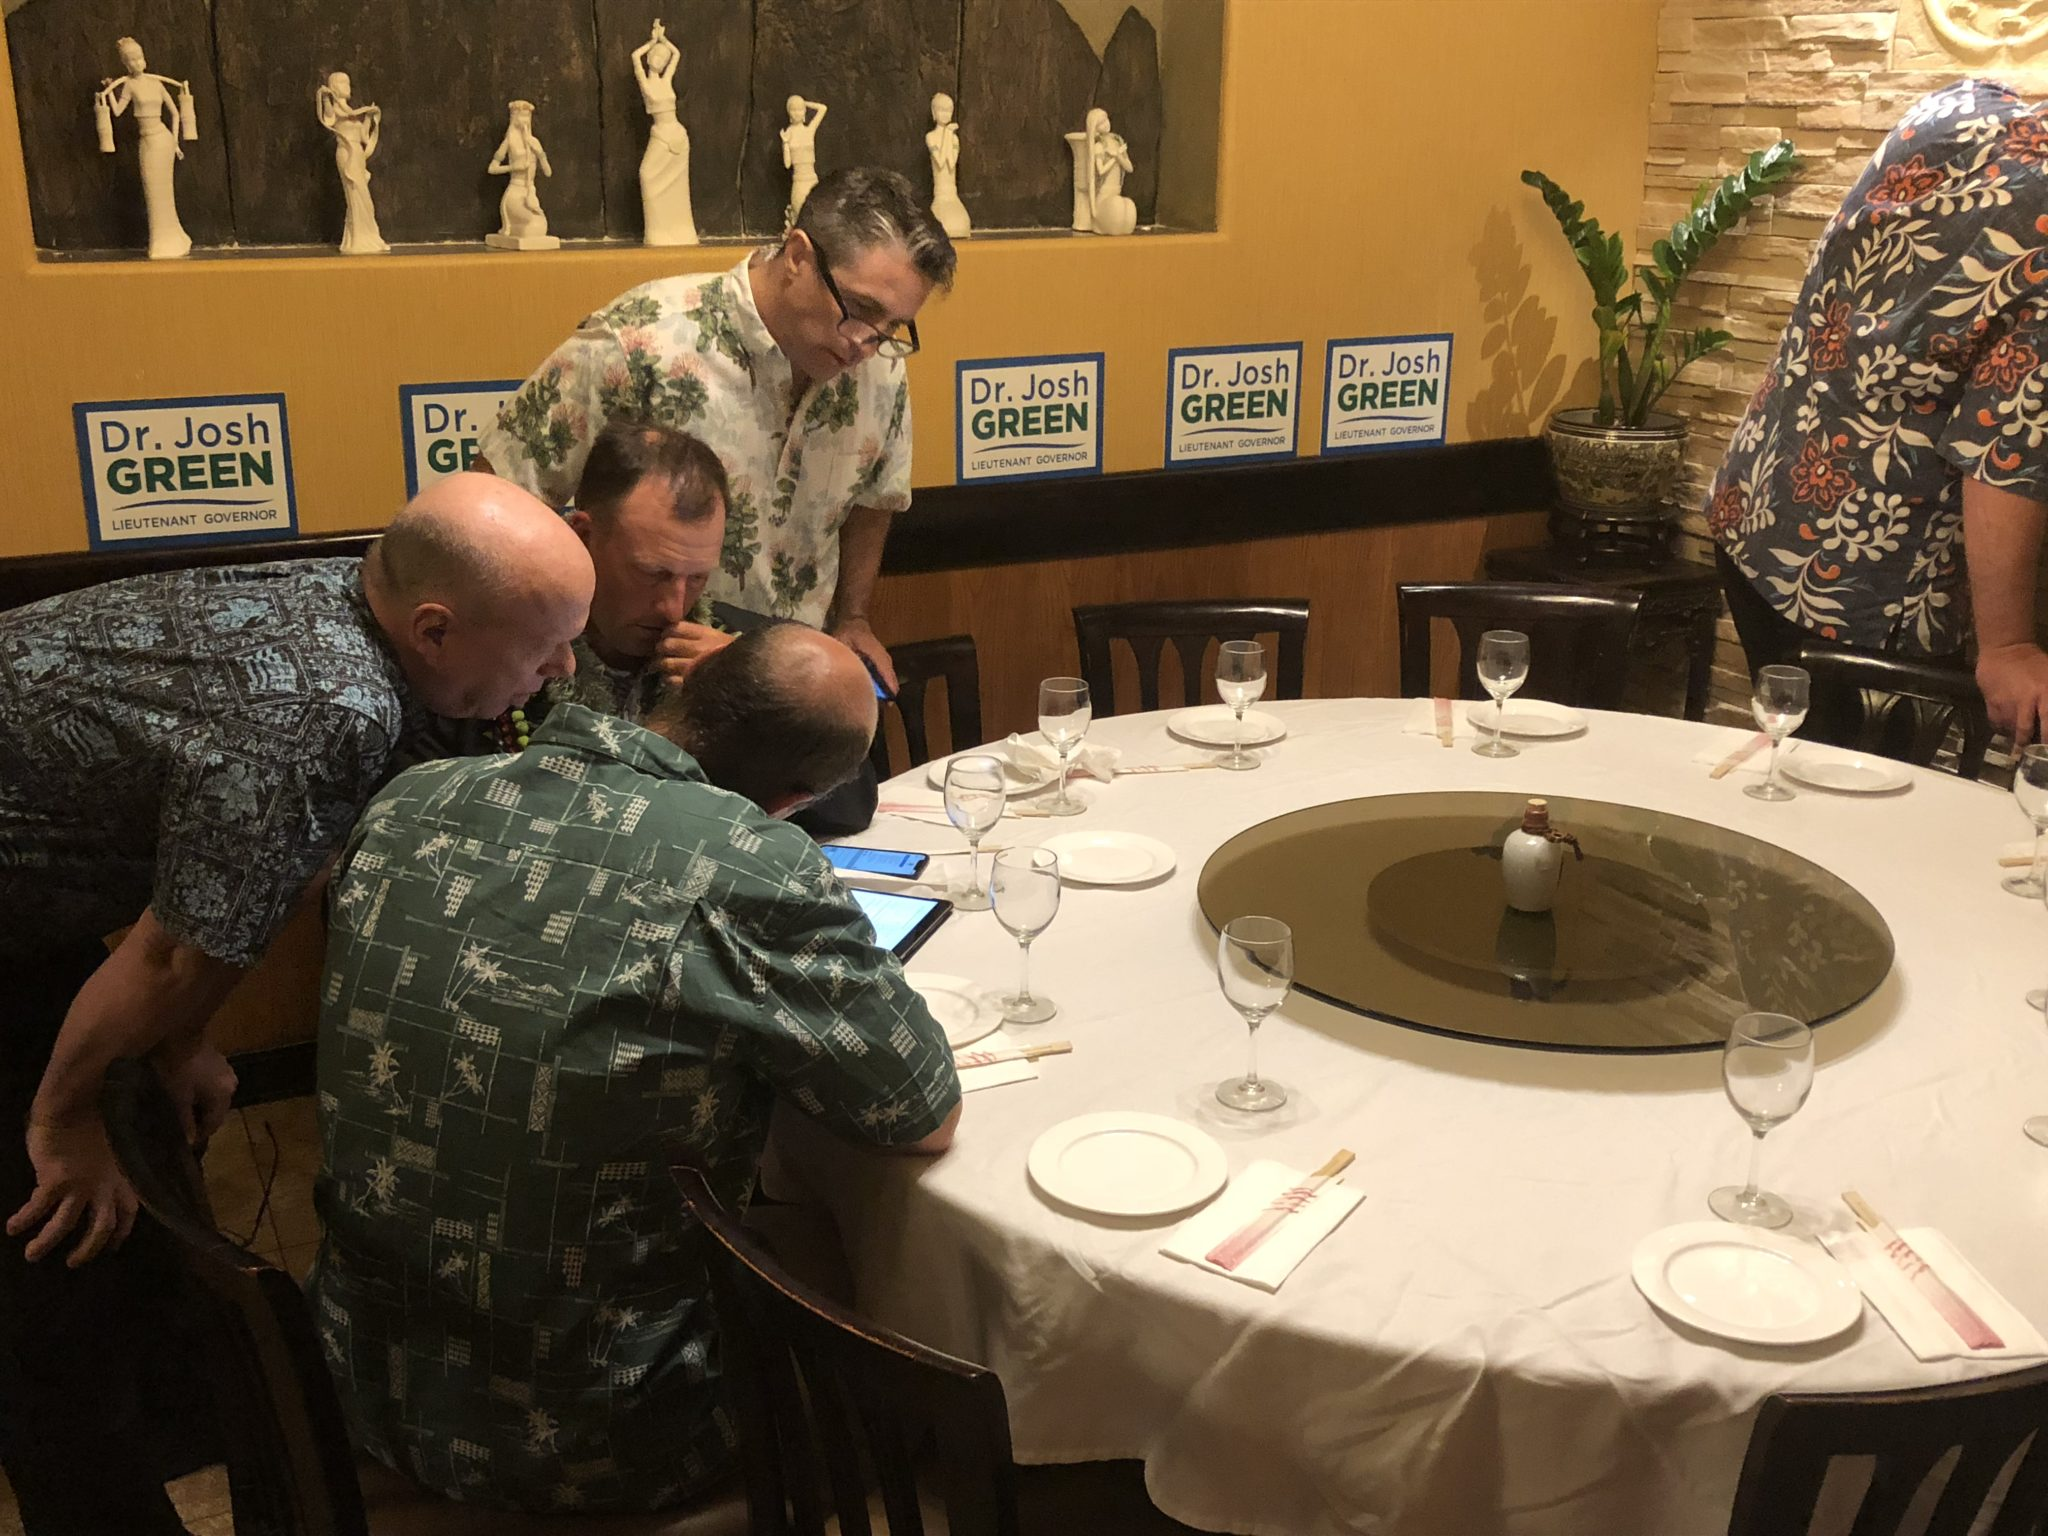 <p>State Sen. Josh Green, right center, checks early returns at the Little Village Noodle House that show him leading in the Democratic primary for lieutenant governor.</p>